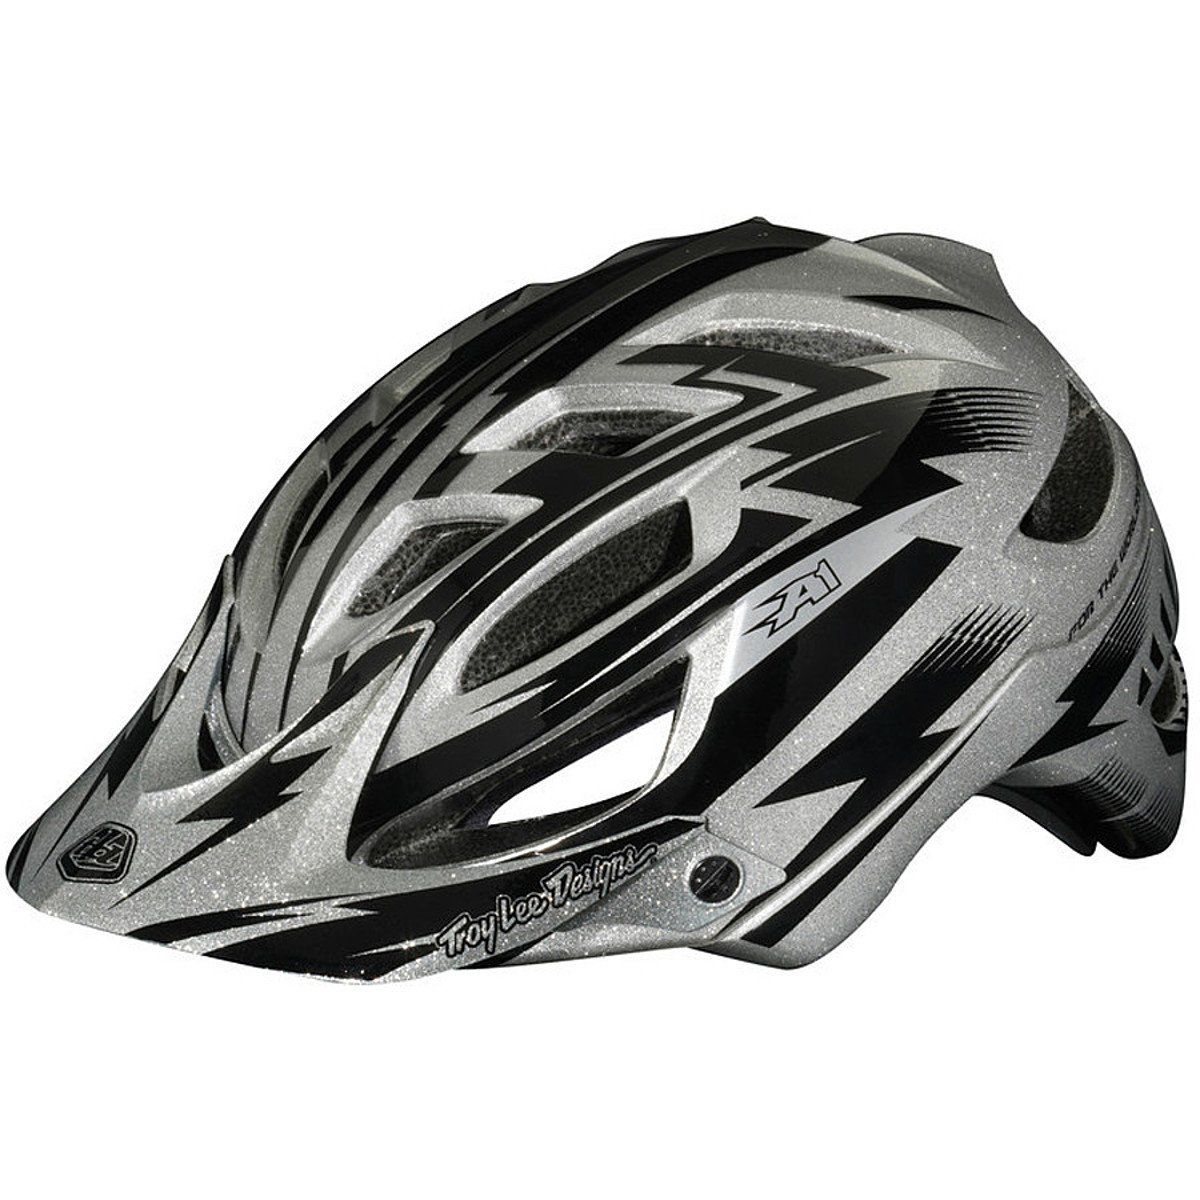 Silver Troy Lee Designs Bicycle Helmets